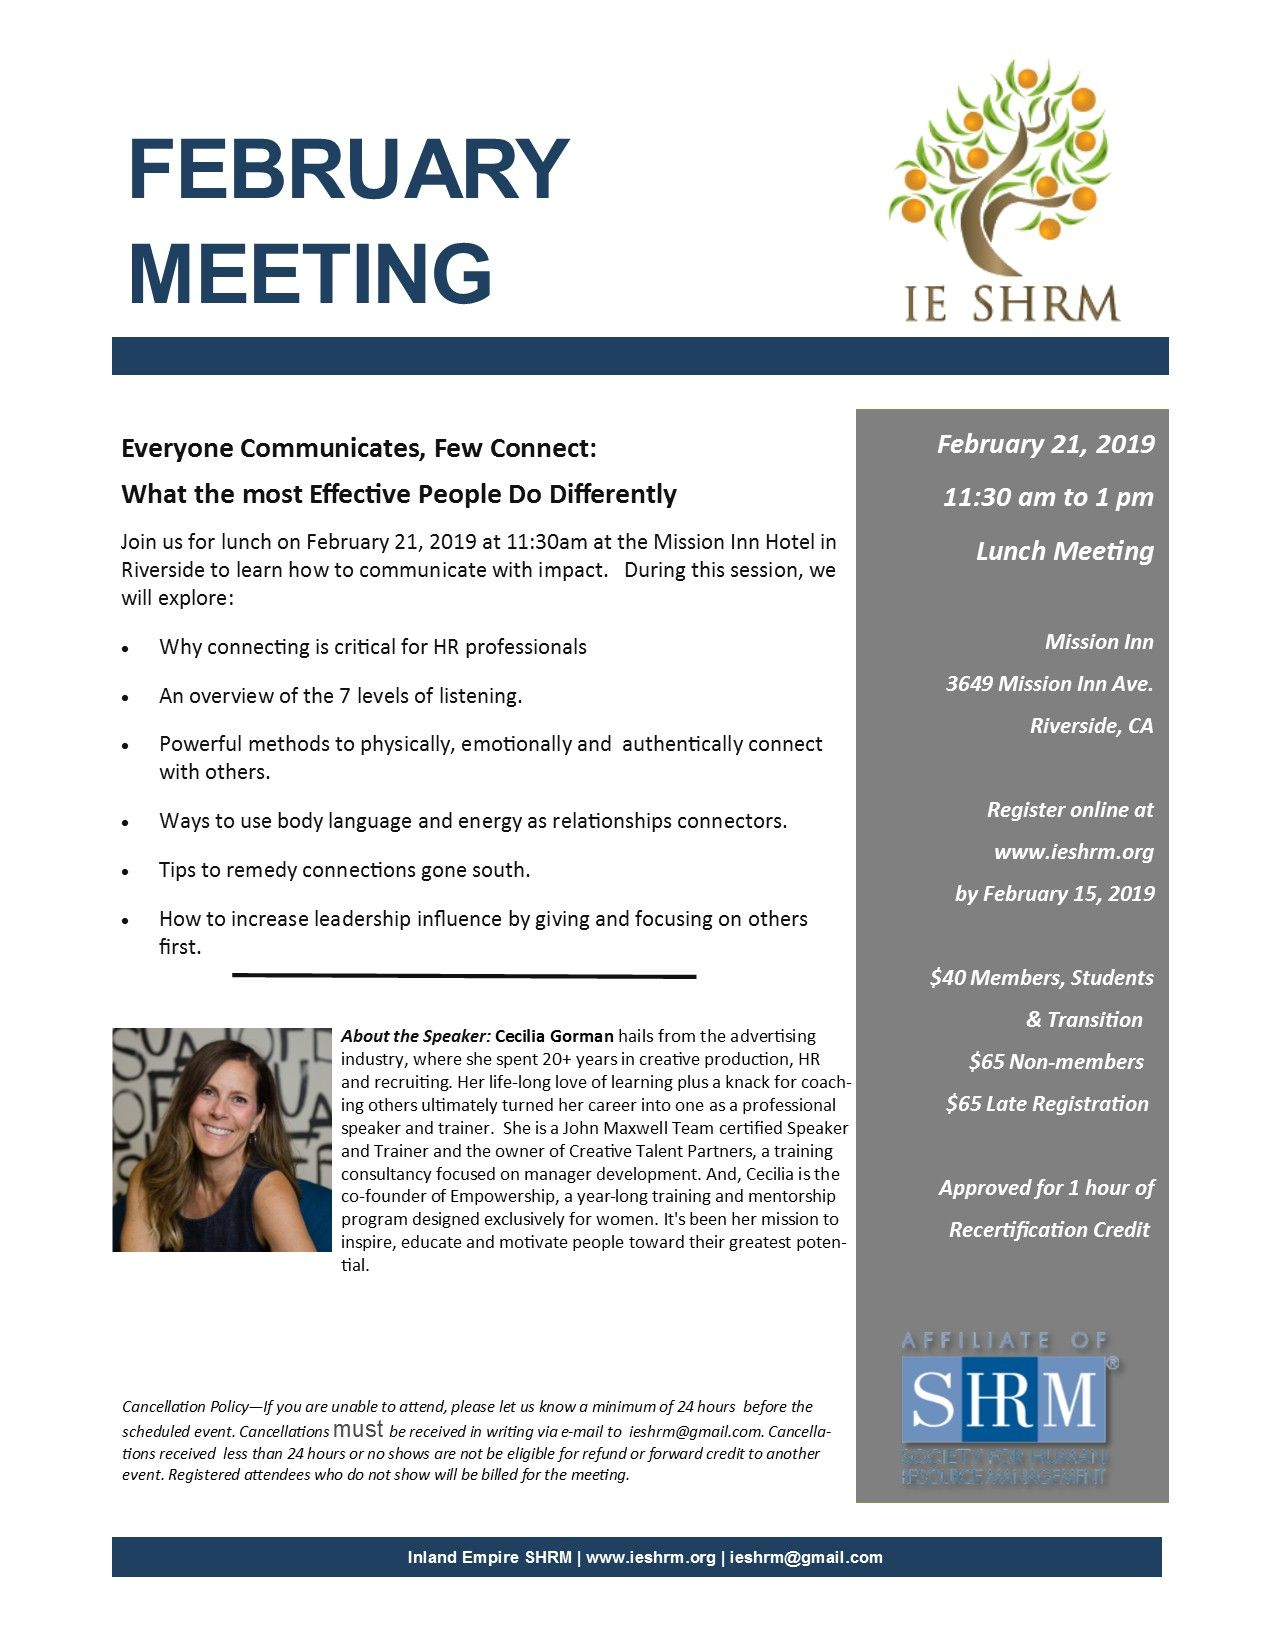 Pin By Inland Empire Shrm On Chapter Events | Event